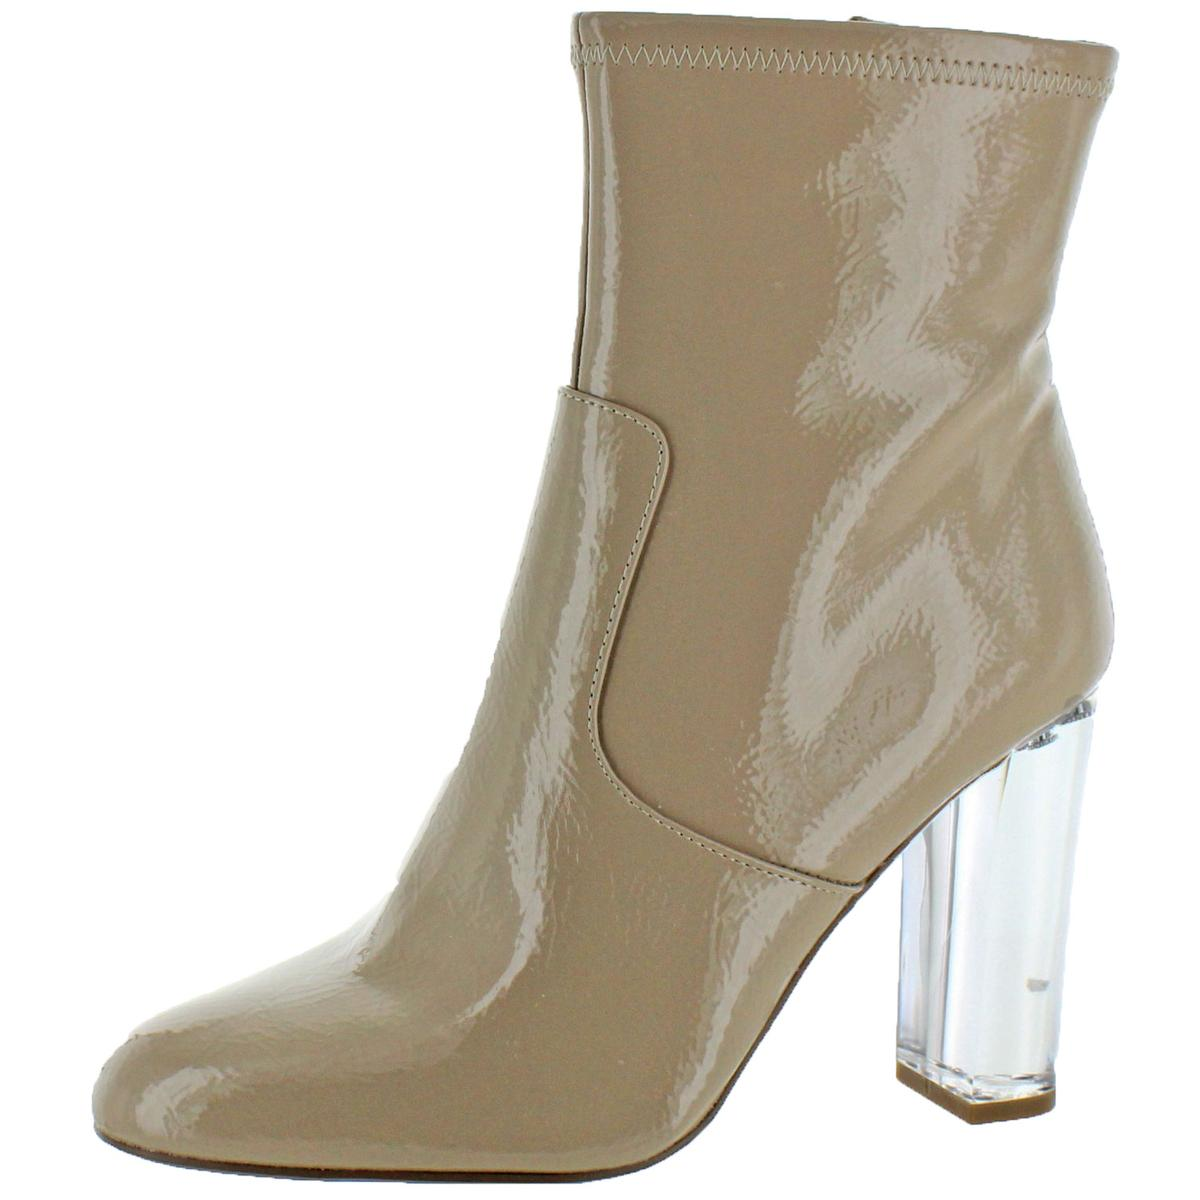 fb66d60188 Details about Steve Madden Eminent Women's Patent Side Zip Clear Heel Party  Ankle Dress Boots